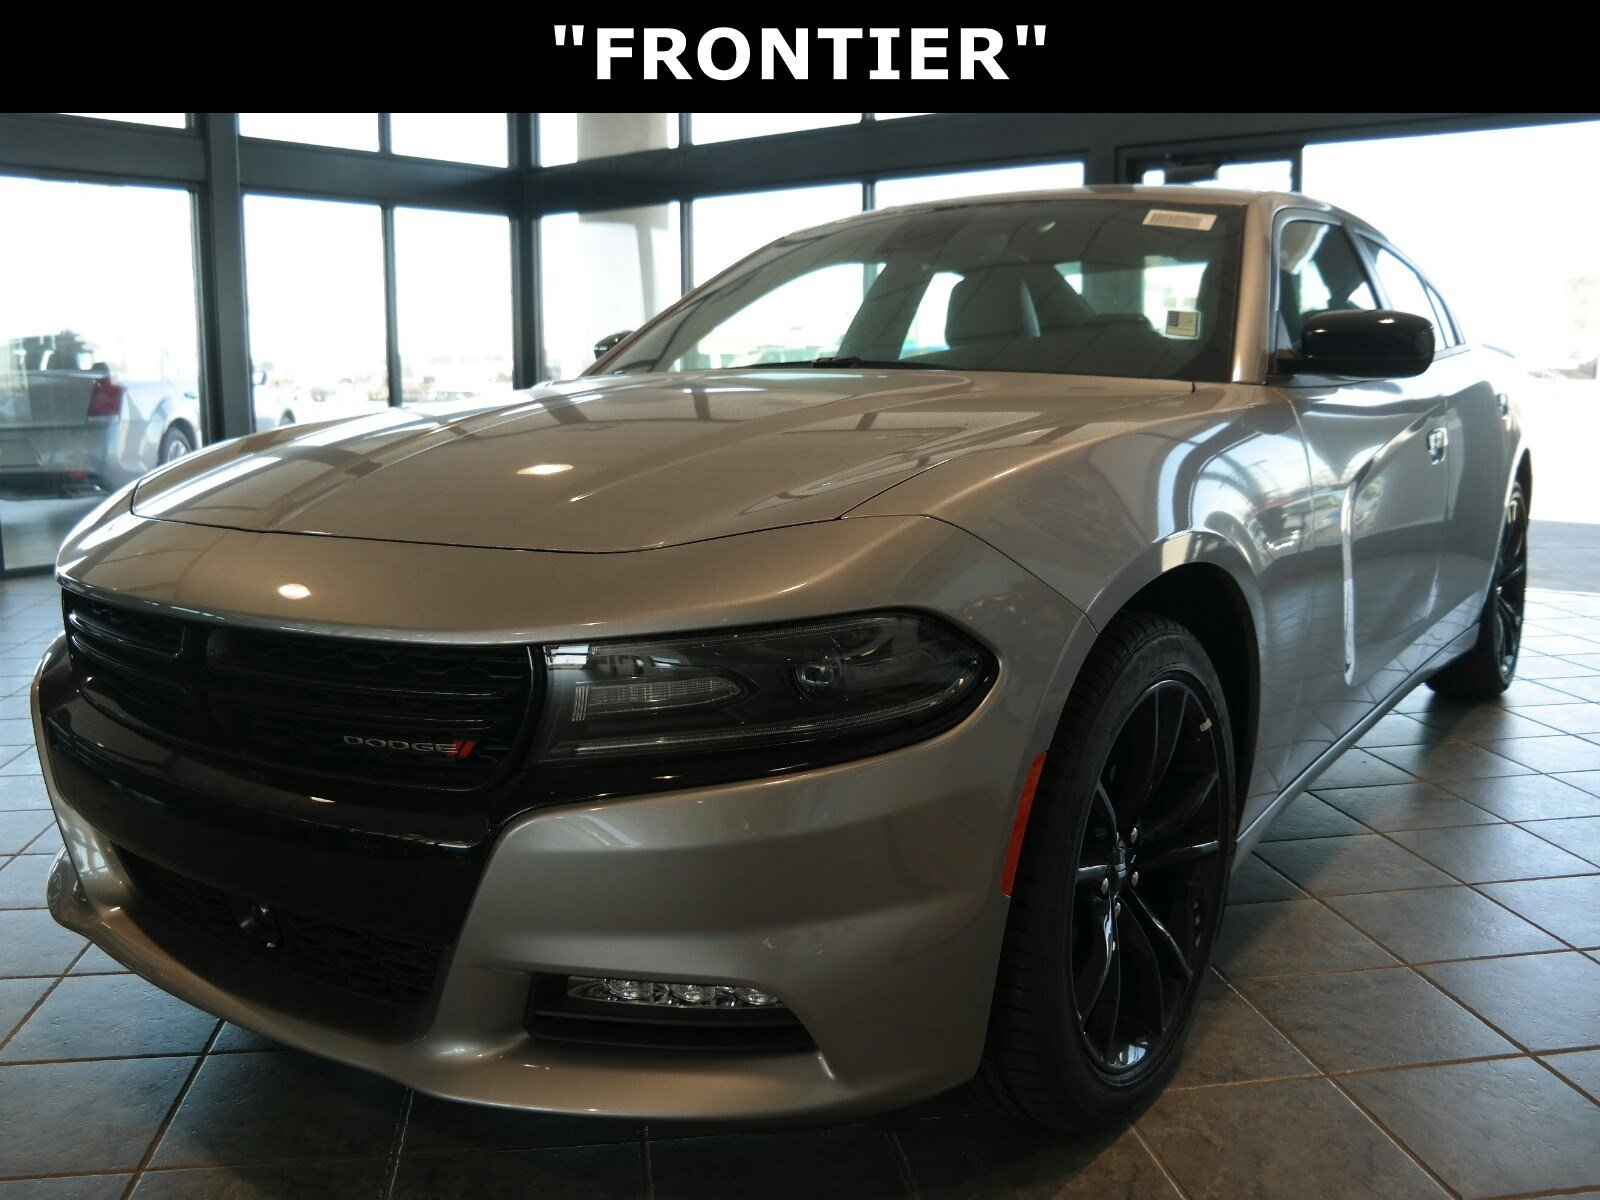 2018 Dodge Charger SXT PLUS RWD - LEATHER Sedan For Sale in El Reno, TX